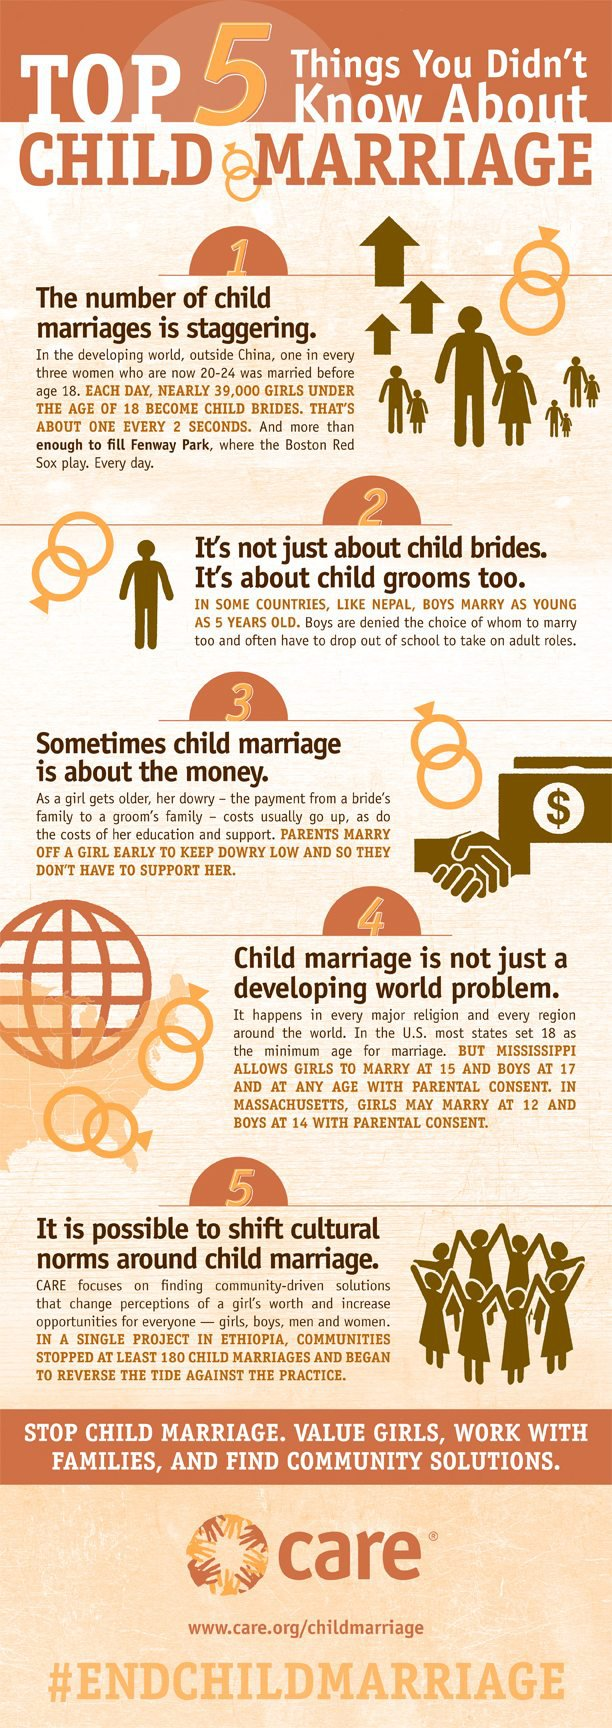 CARE Child-Marriage-Infographic_Final.jpg